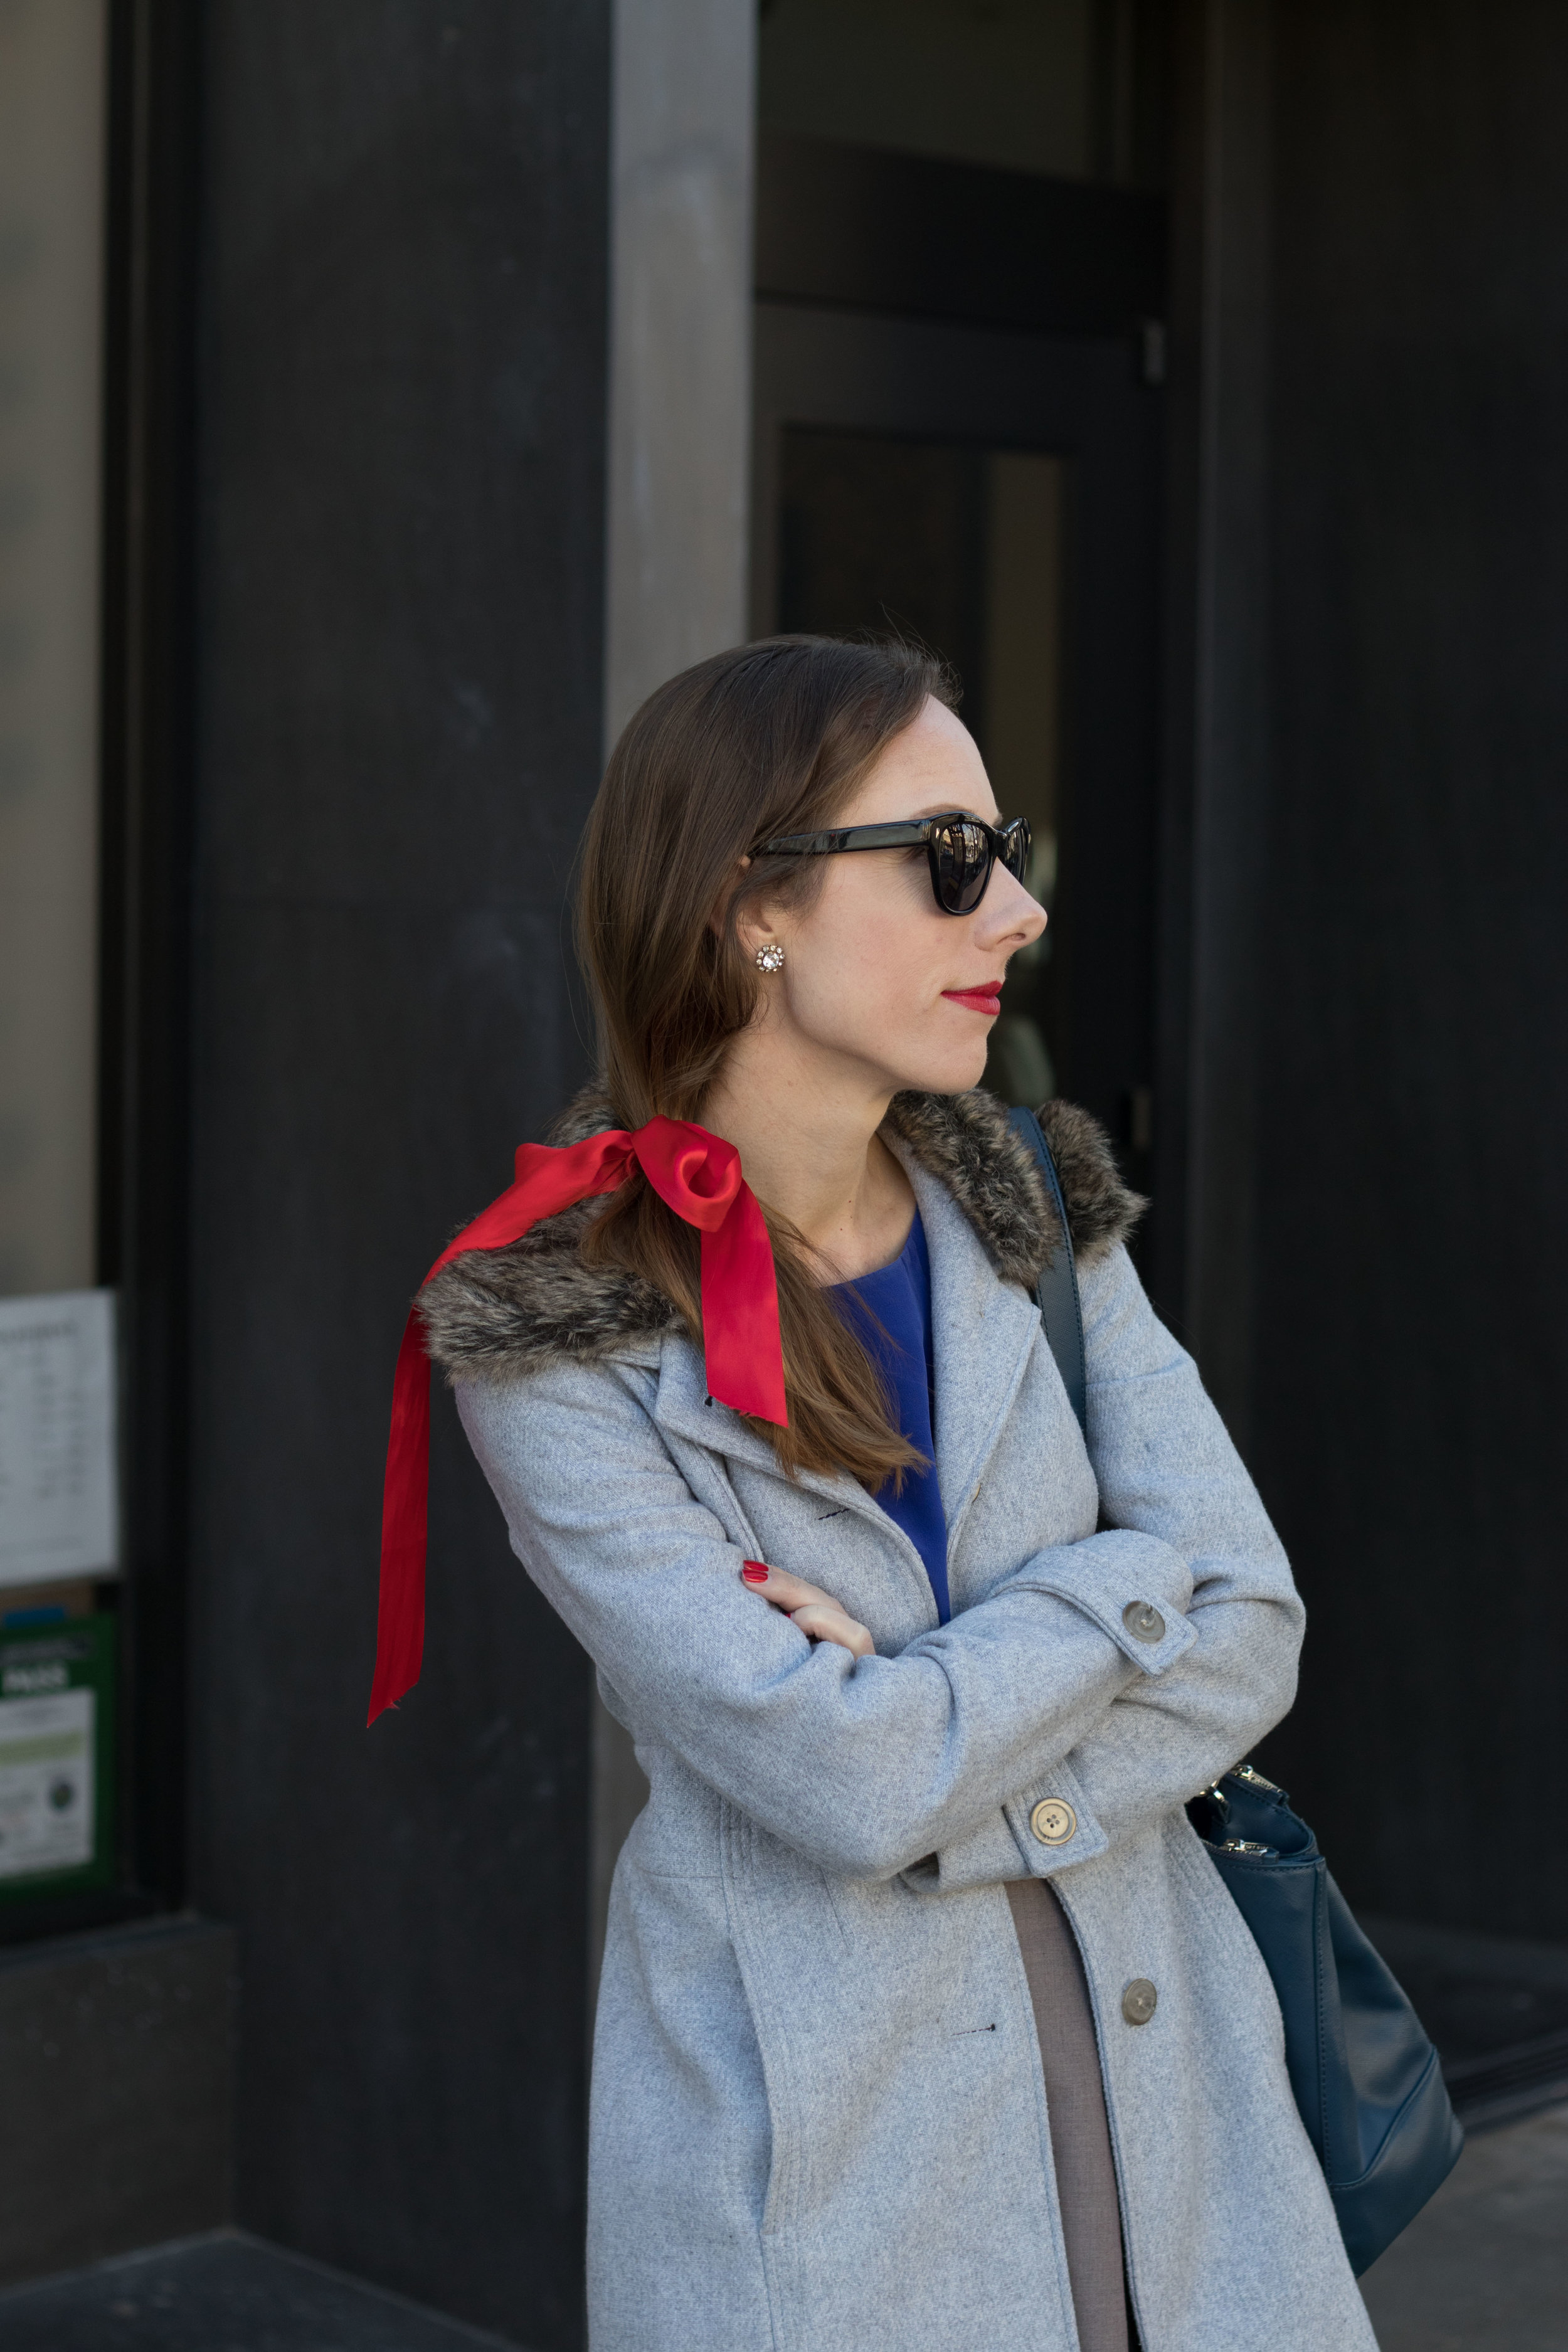 blue-blouse-and-gray-jacket.jpg